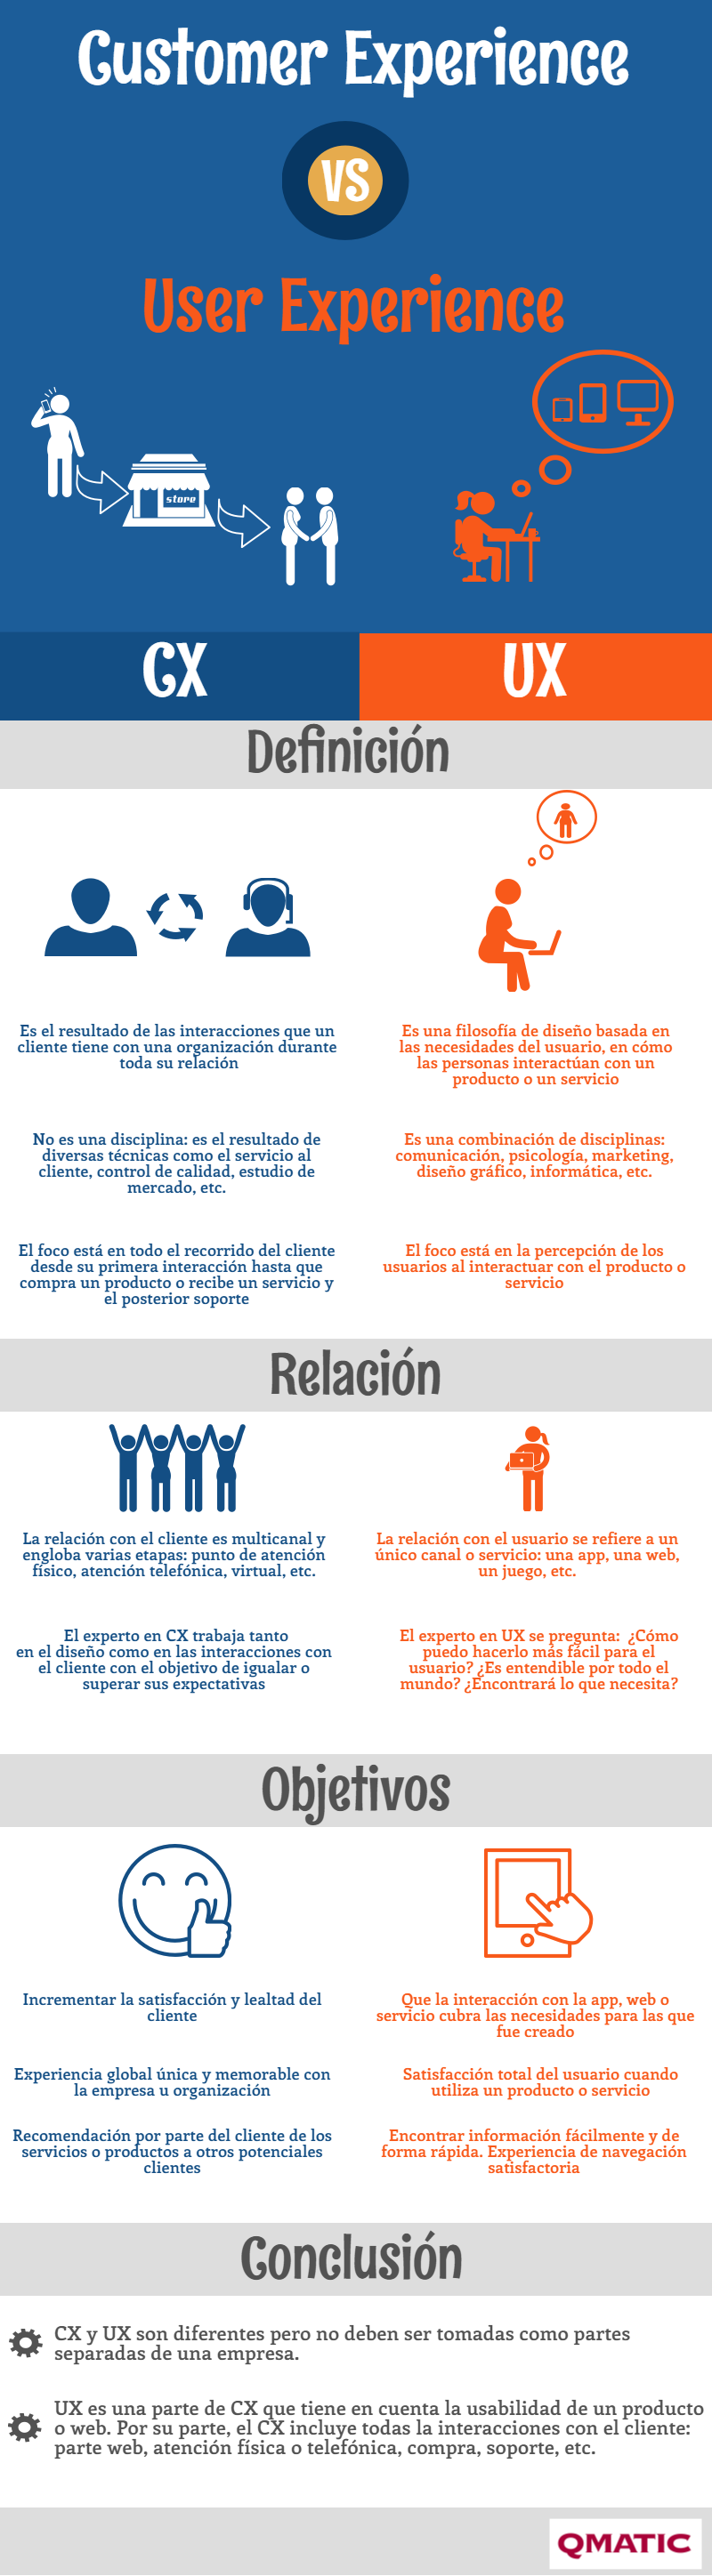 qmatic-trends_infografia_cx_vs_ux